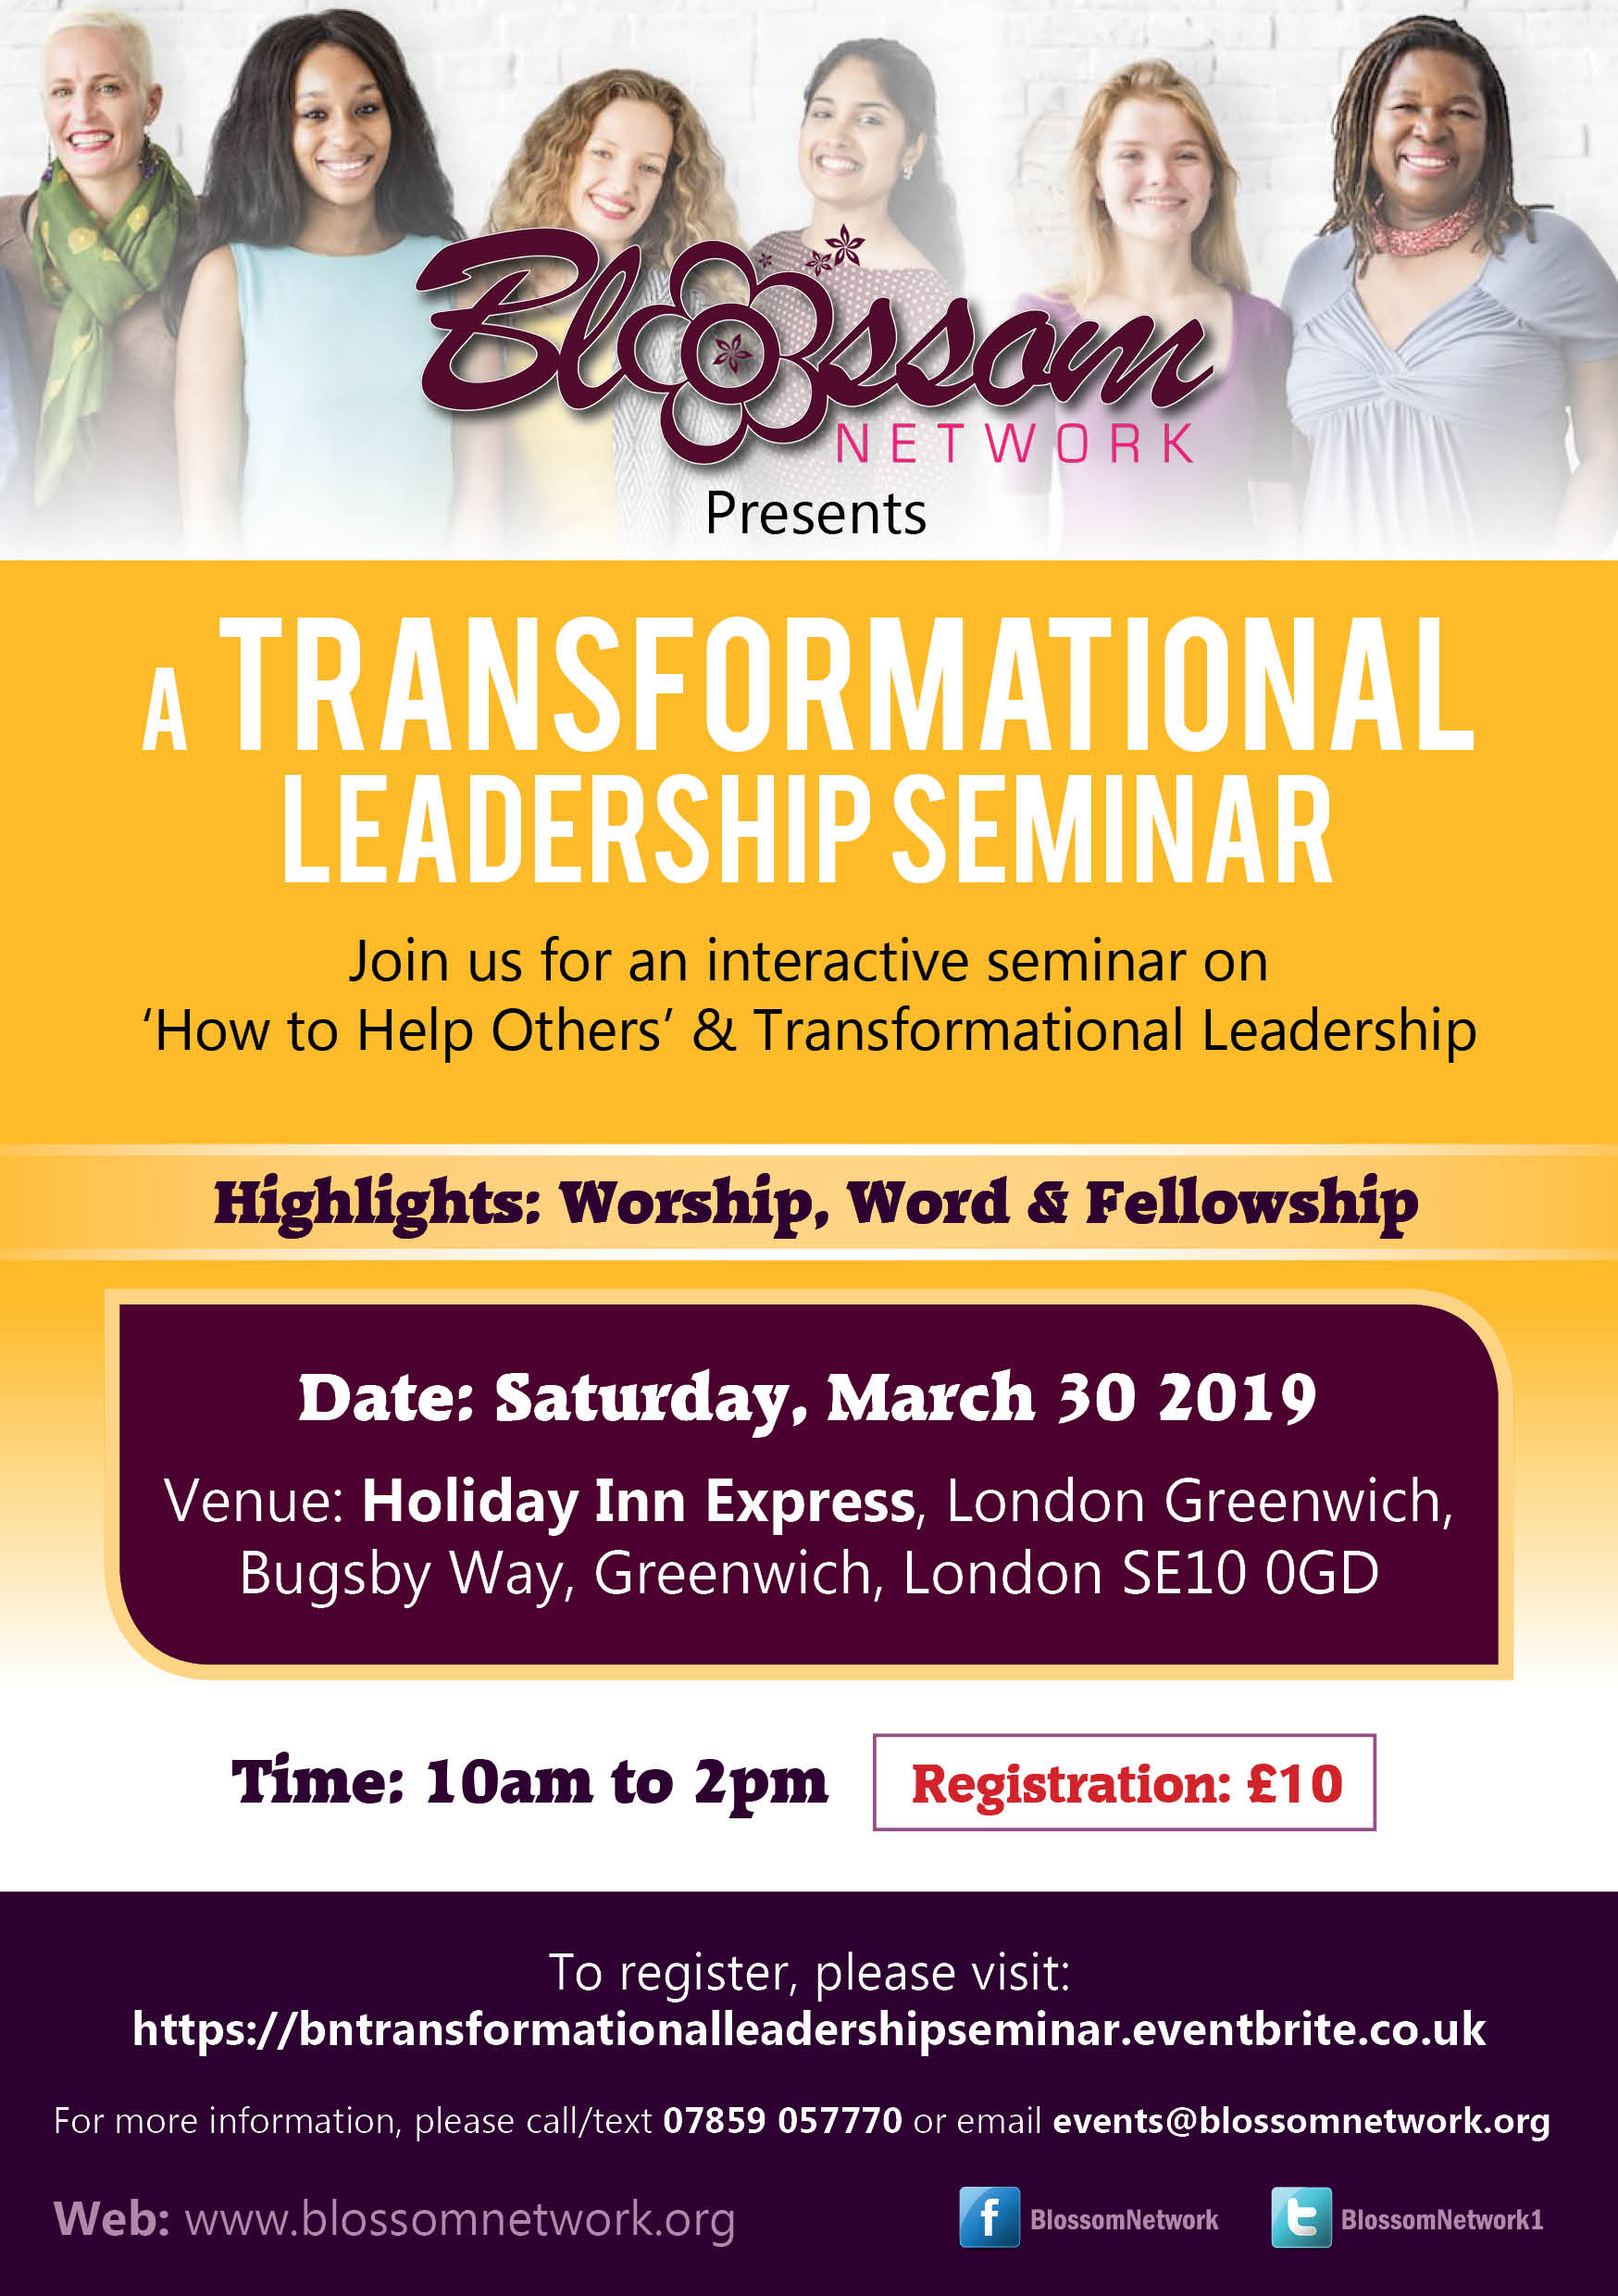 Blossom Transformational Leadership Seminar @ Holiday Inn Express, London Greenwich | England | United Kingdom